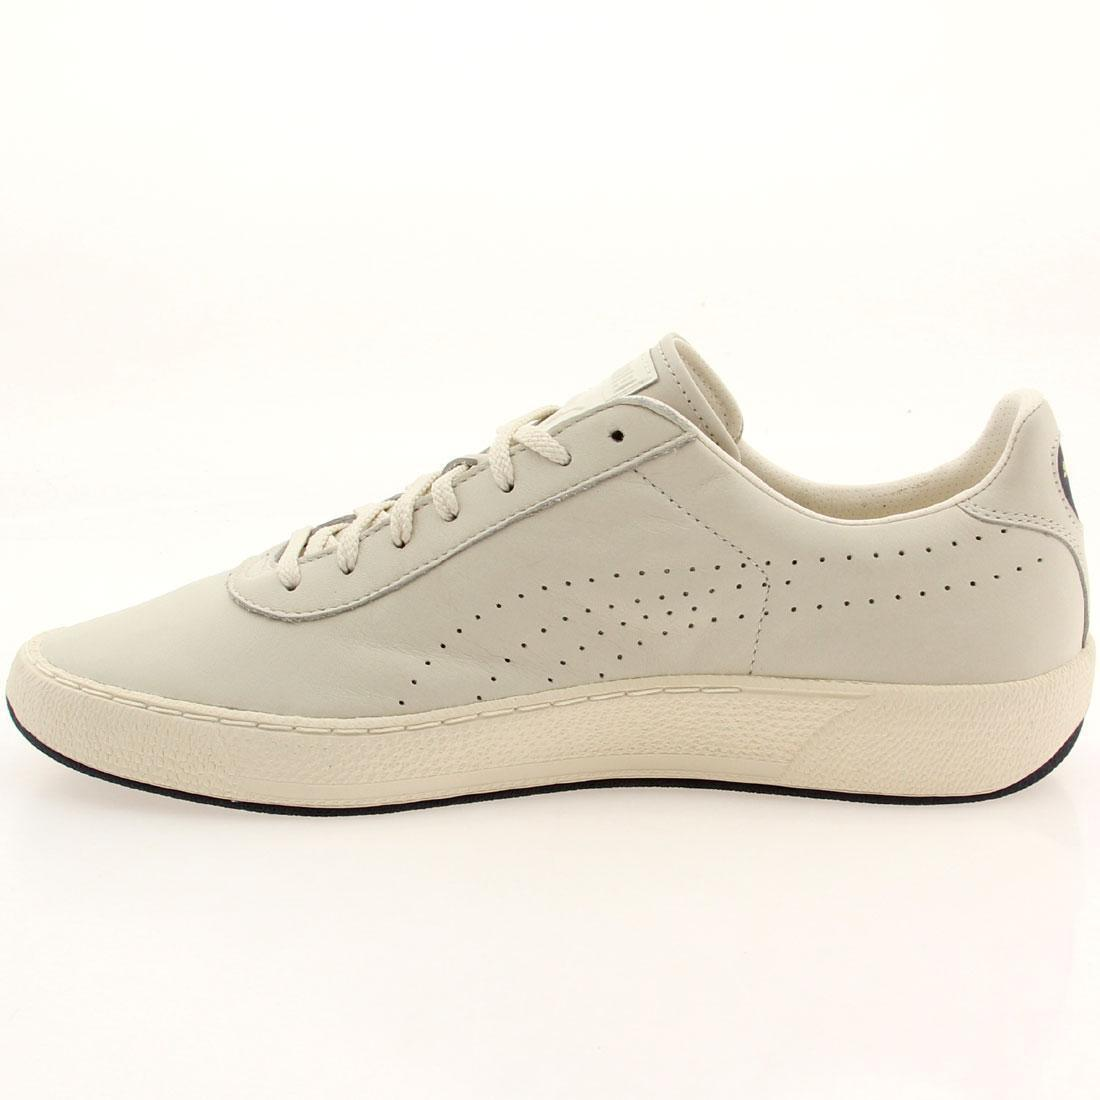 115.00 New Puma Puma Puma Men Puma Star Weiß fashion Turnschuhe 357763-02 df45d0